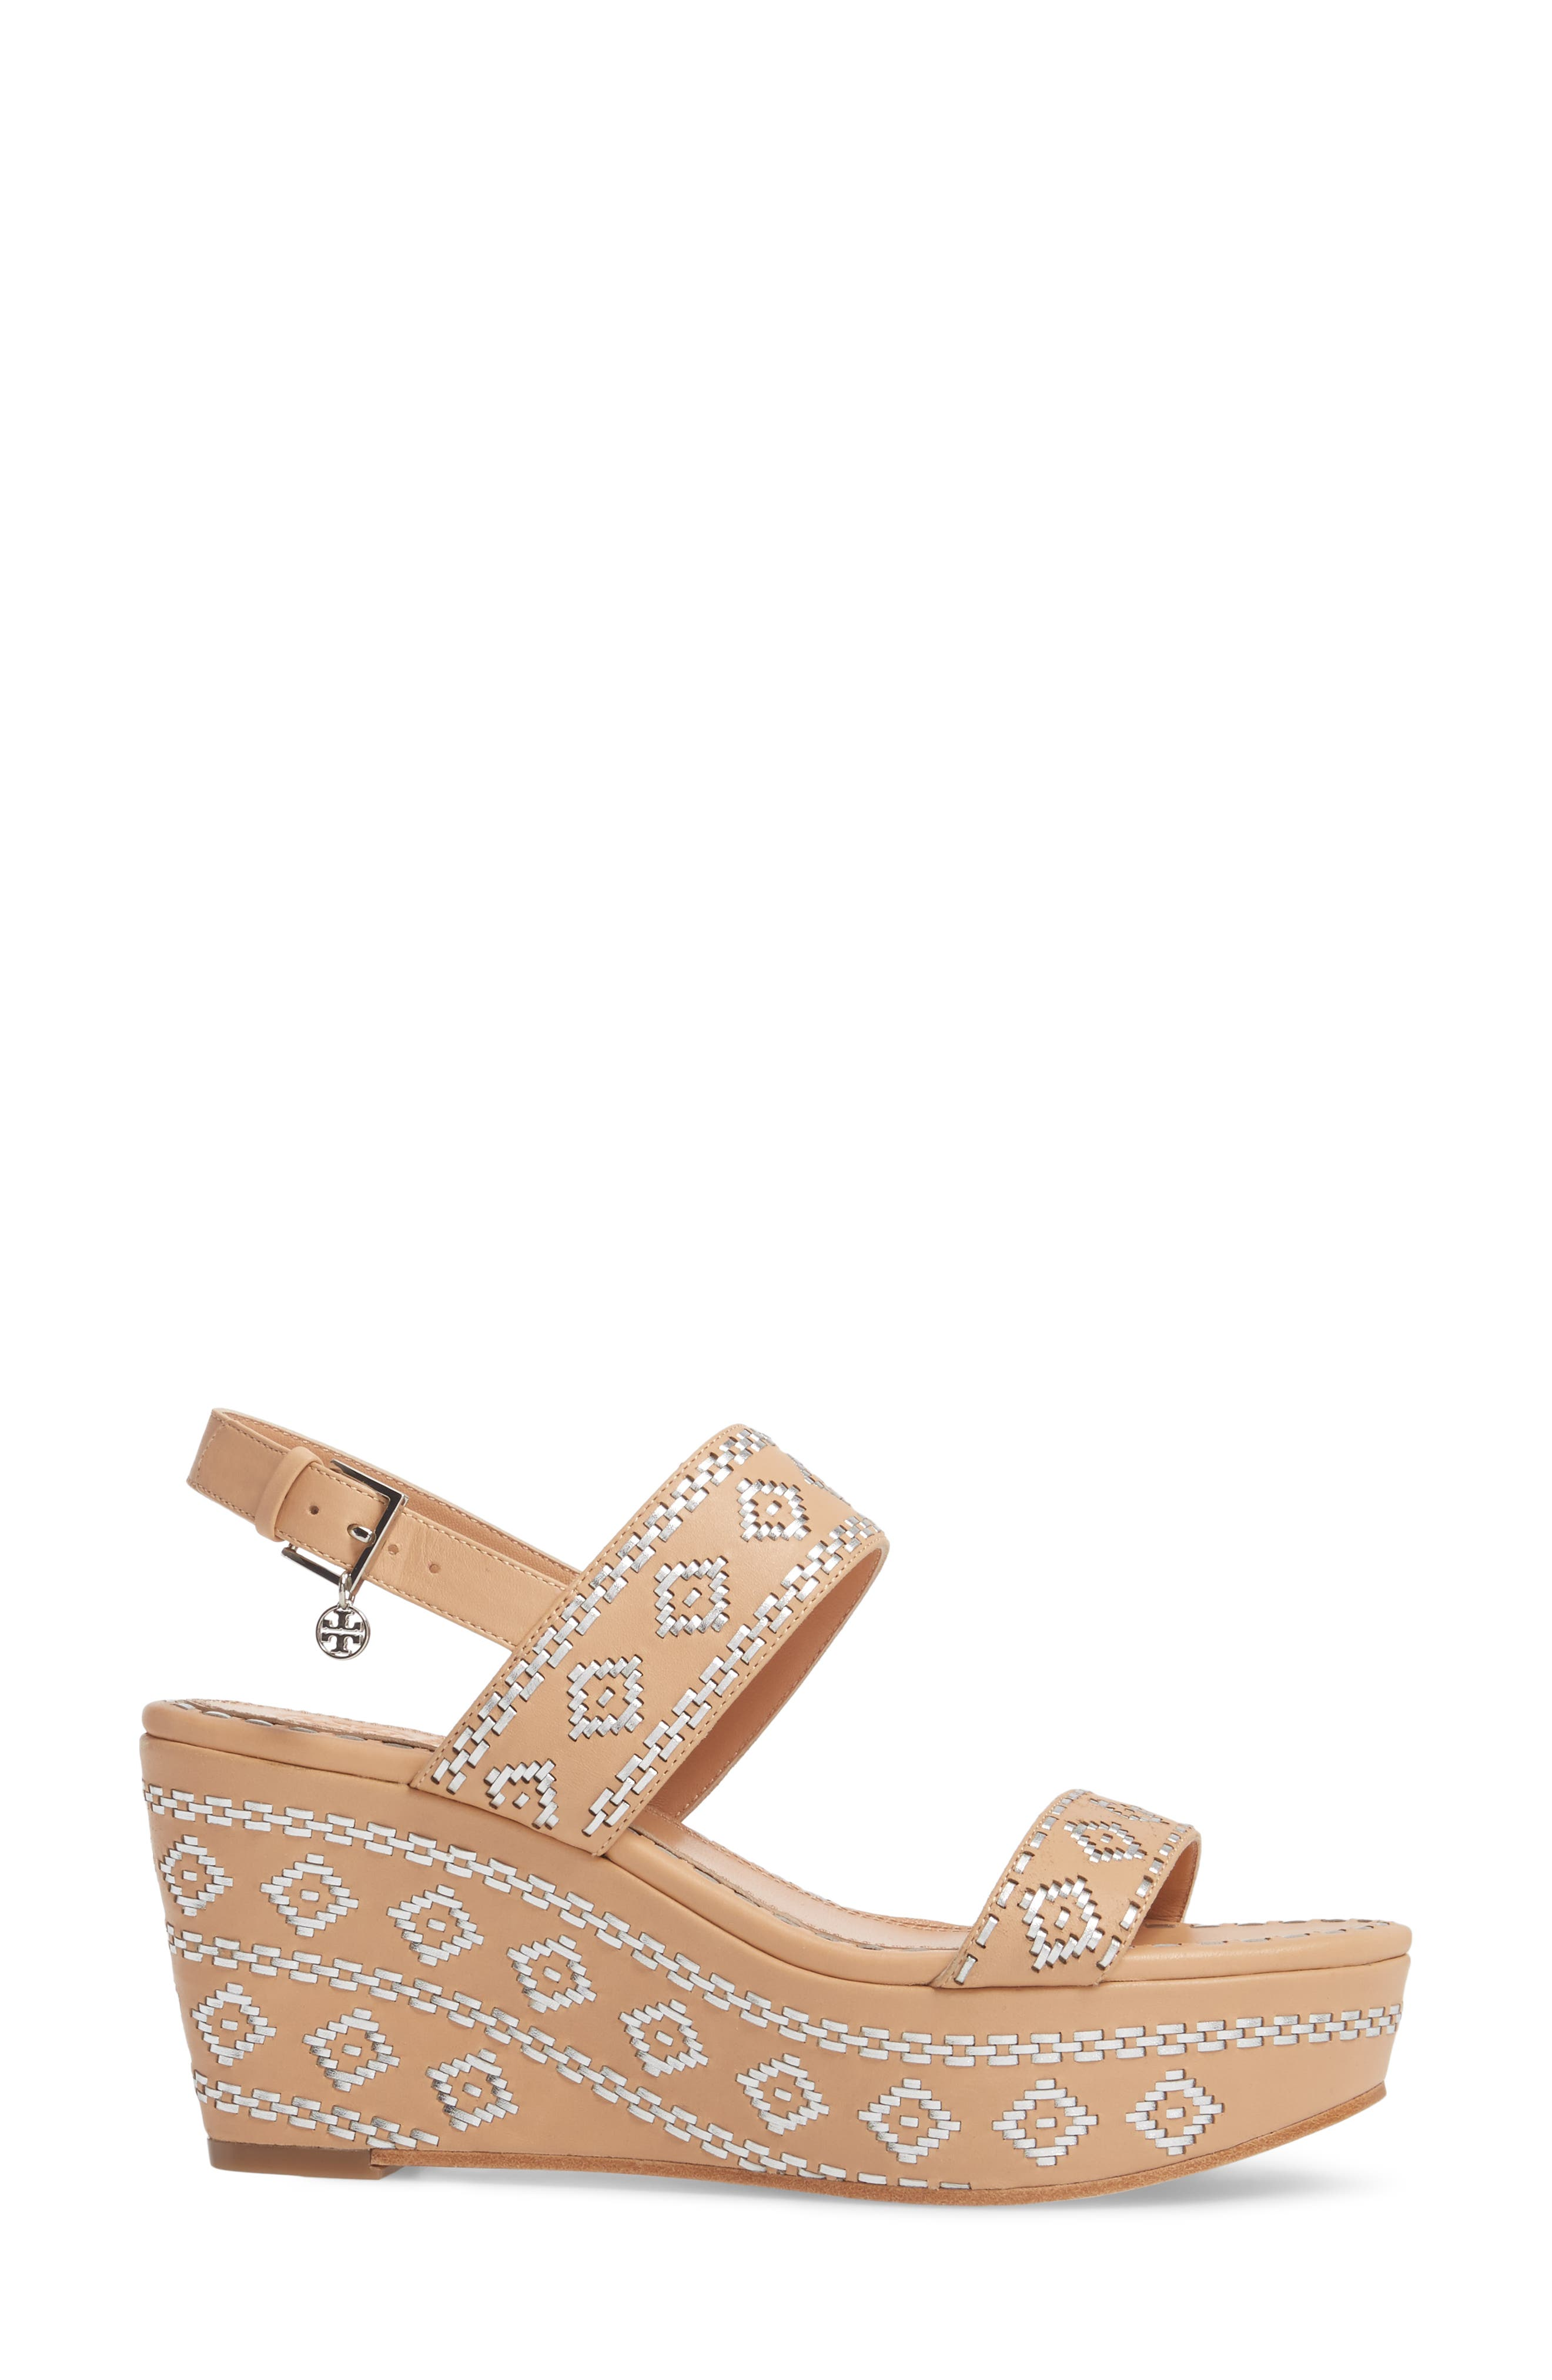 Blake Embroidered Platform Wedge,                             Alternate thumbnail 3, color,                             Natural Vachetta/ Silver